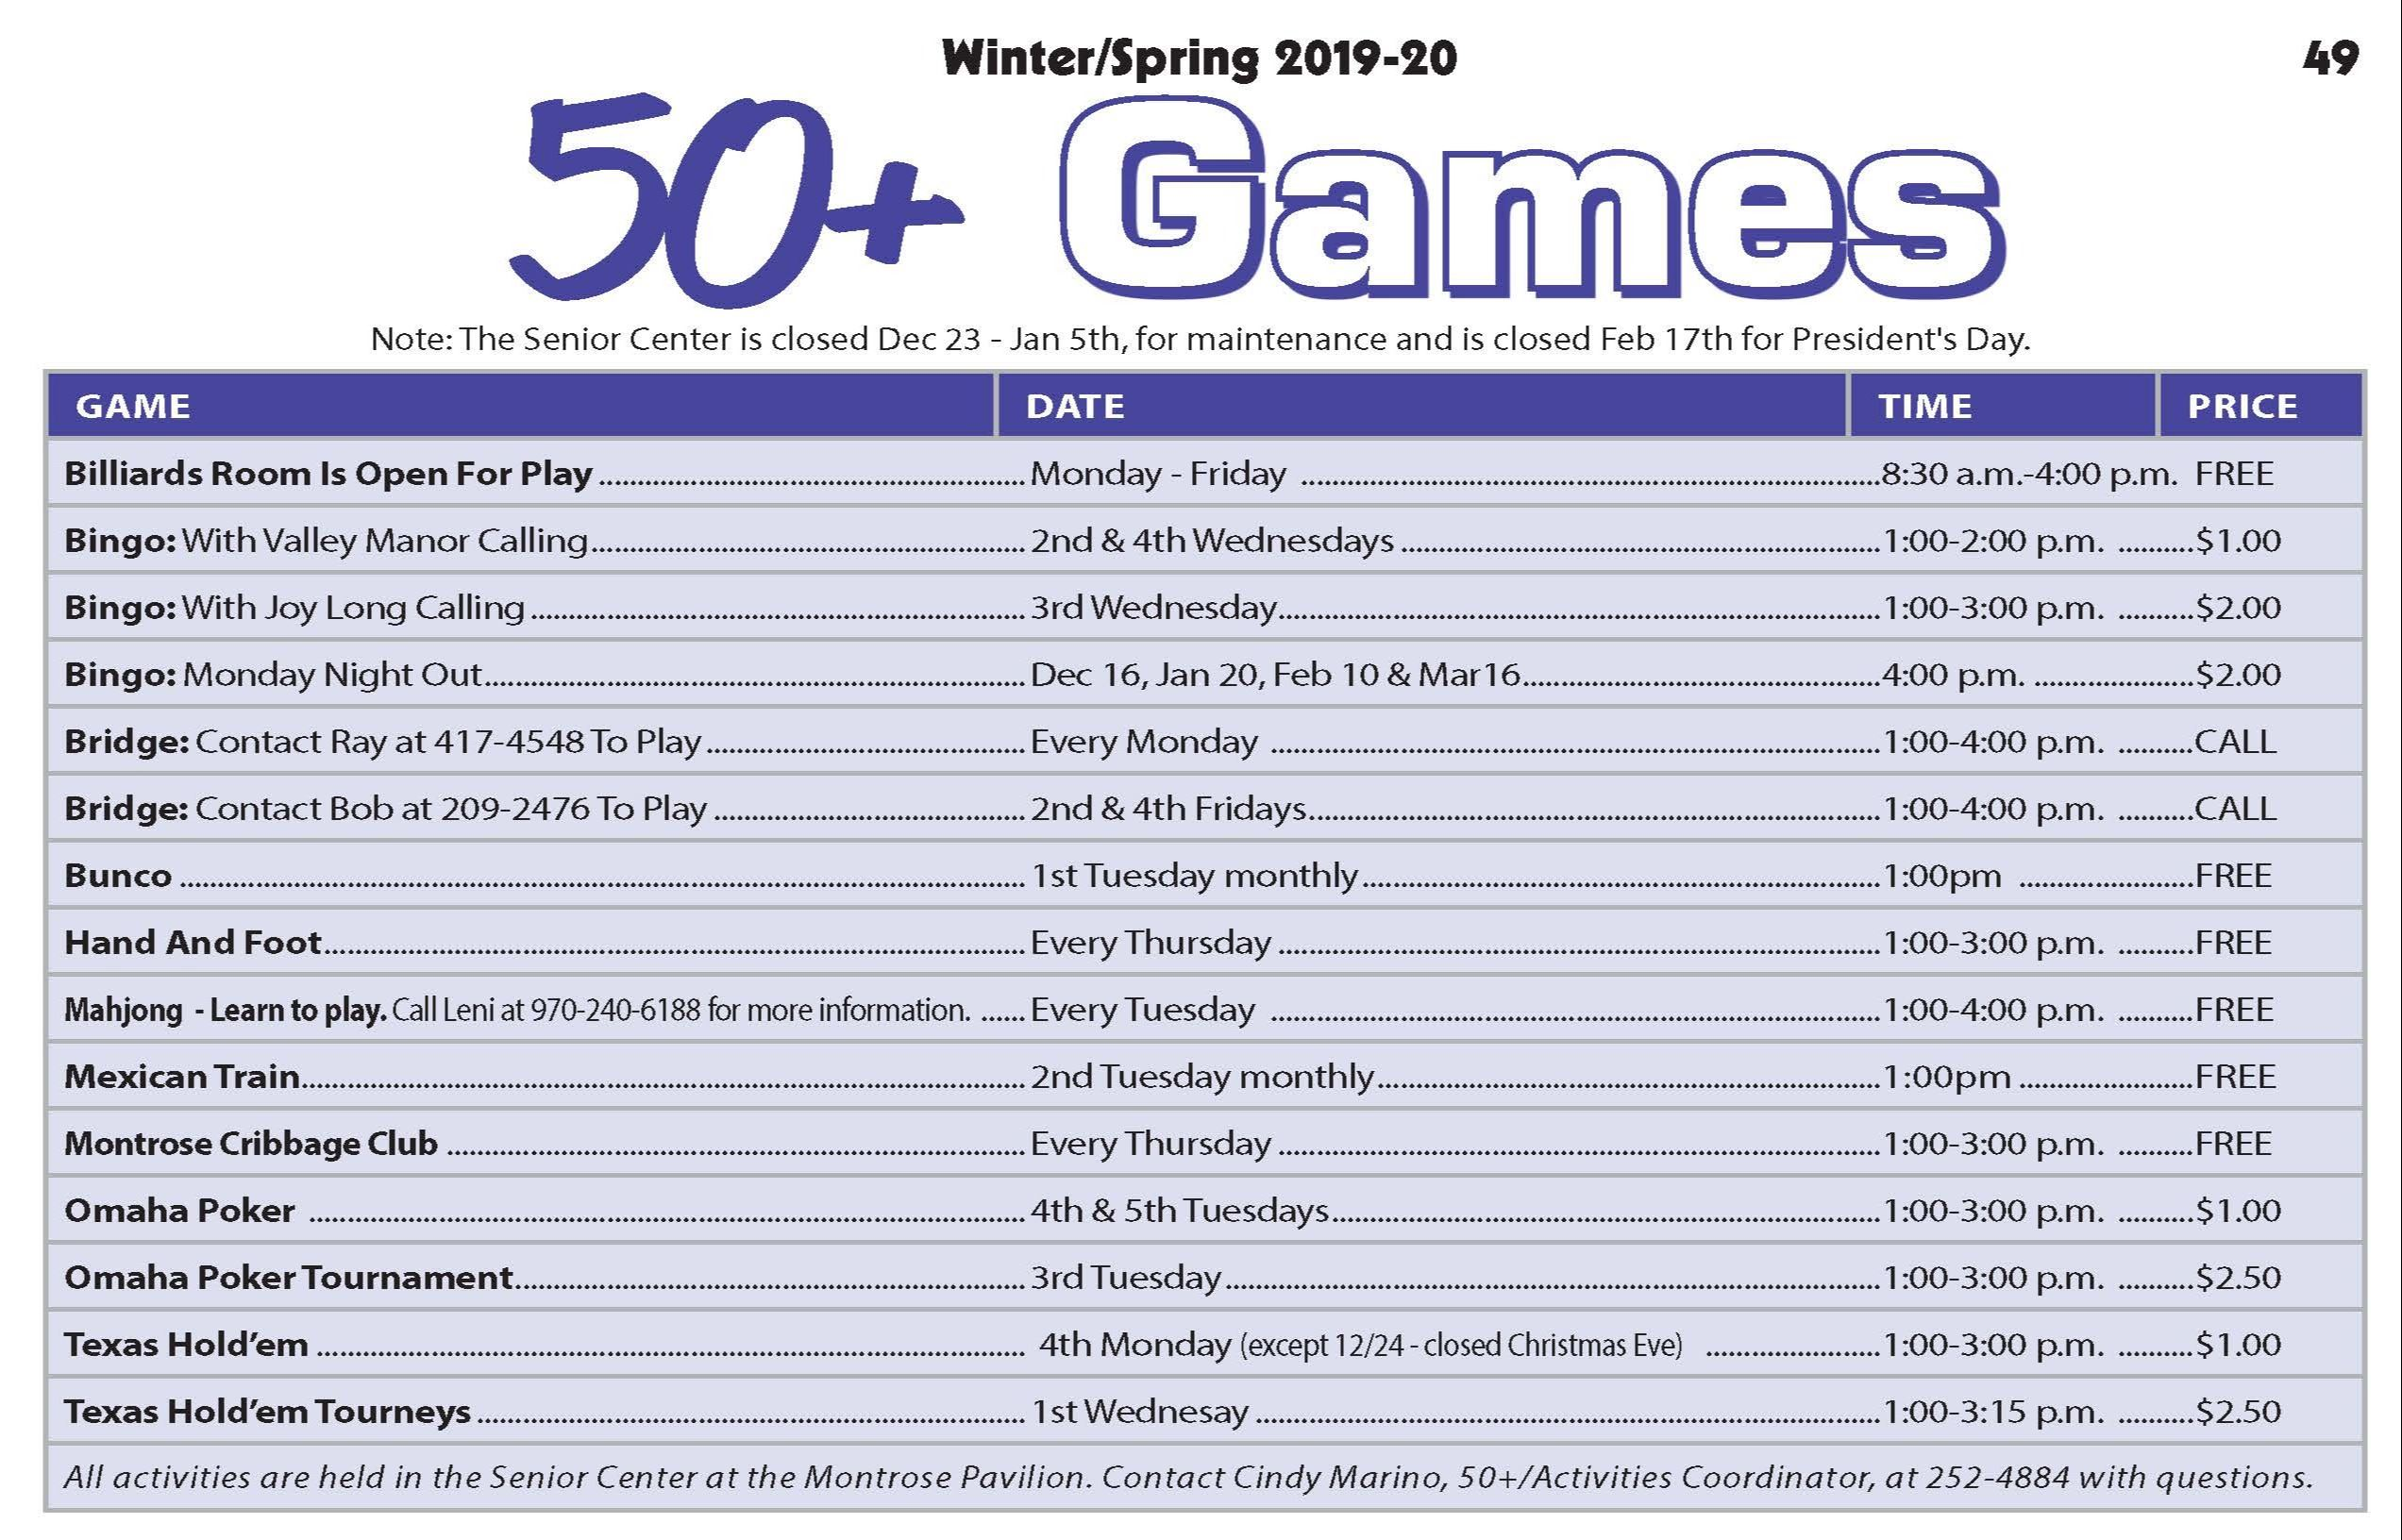 19-20-MRD-WinterSpring-GuideCOMPLETE_Page_49